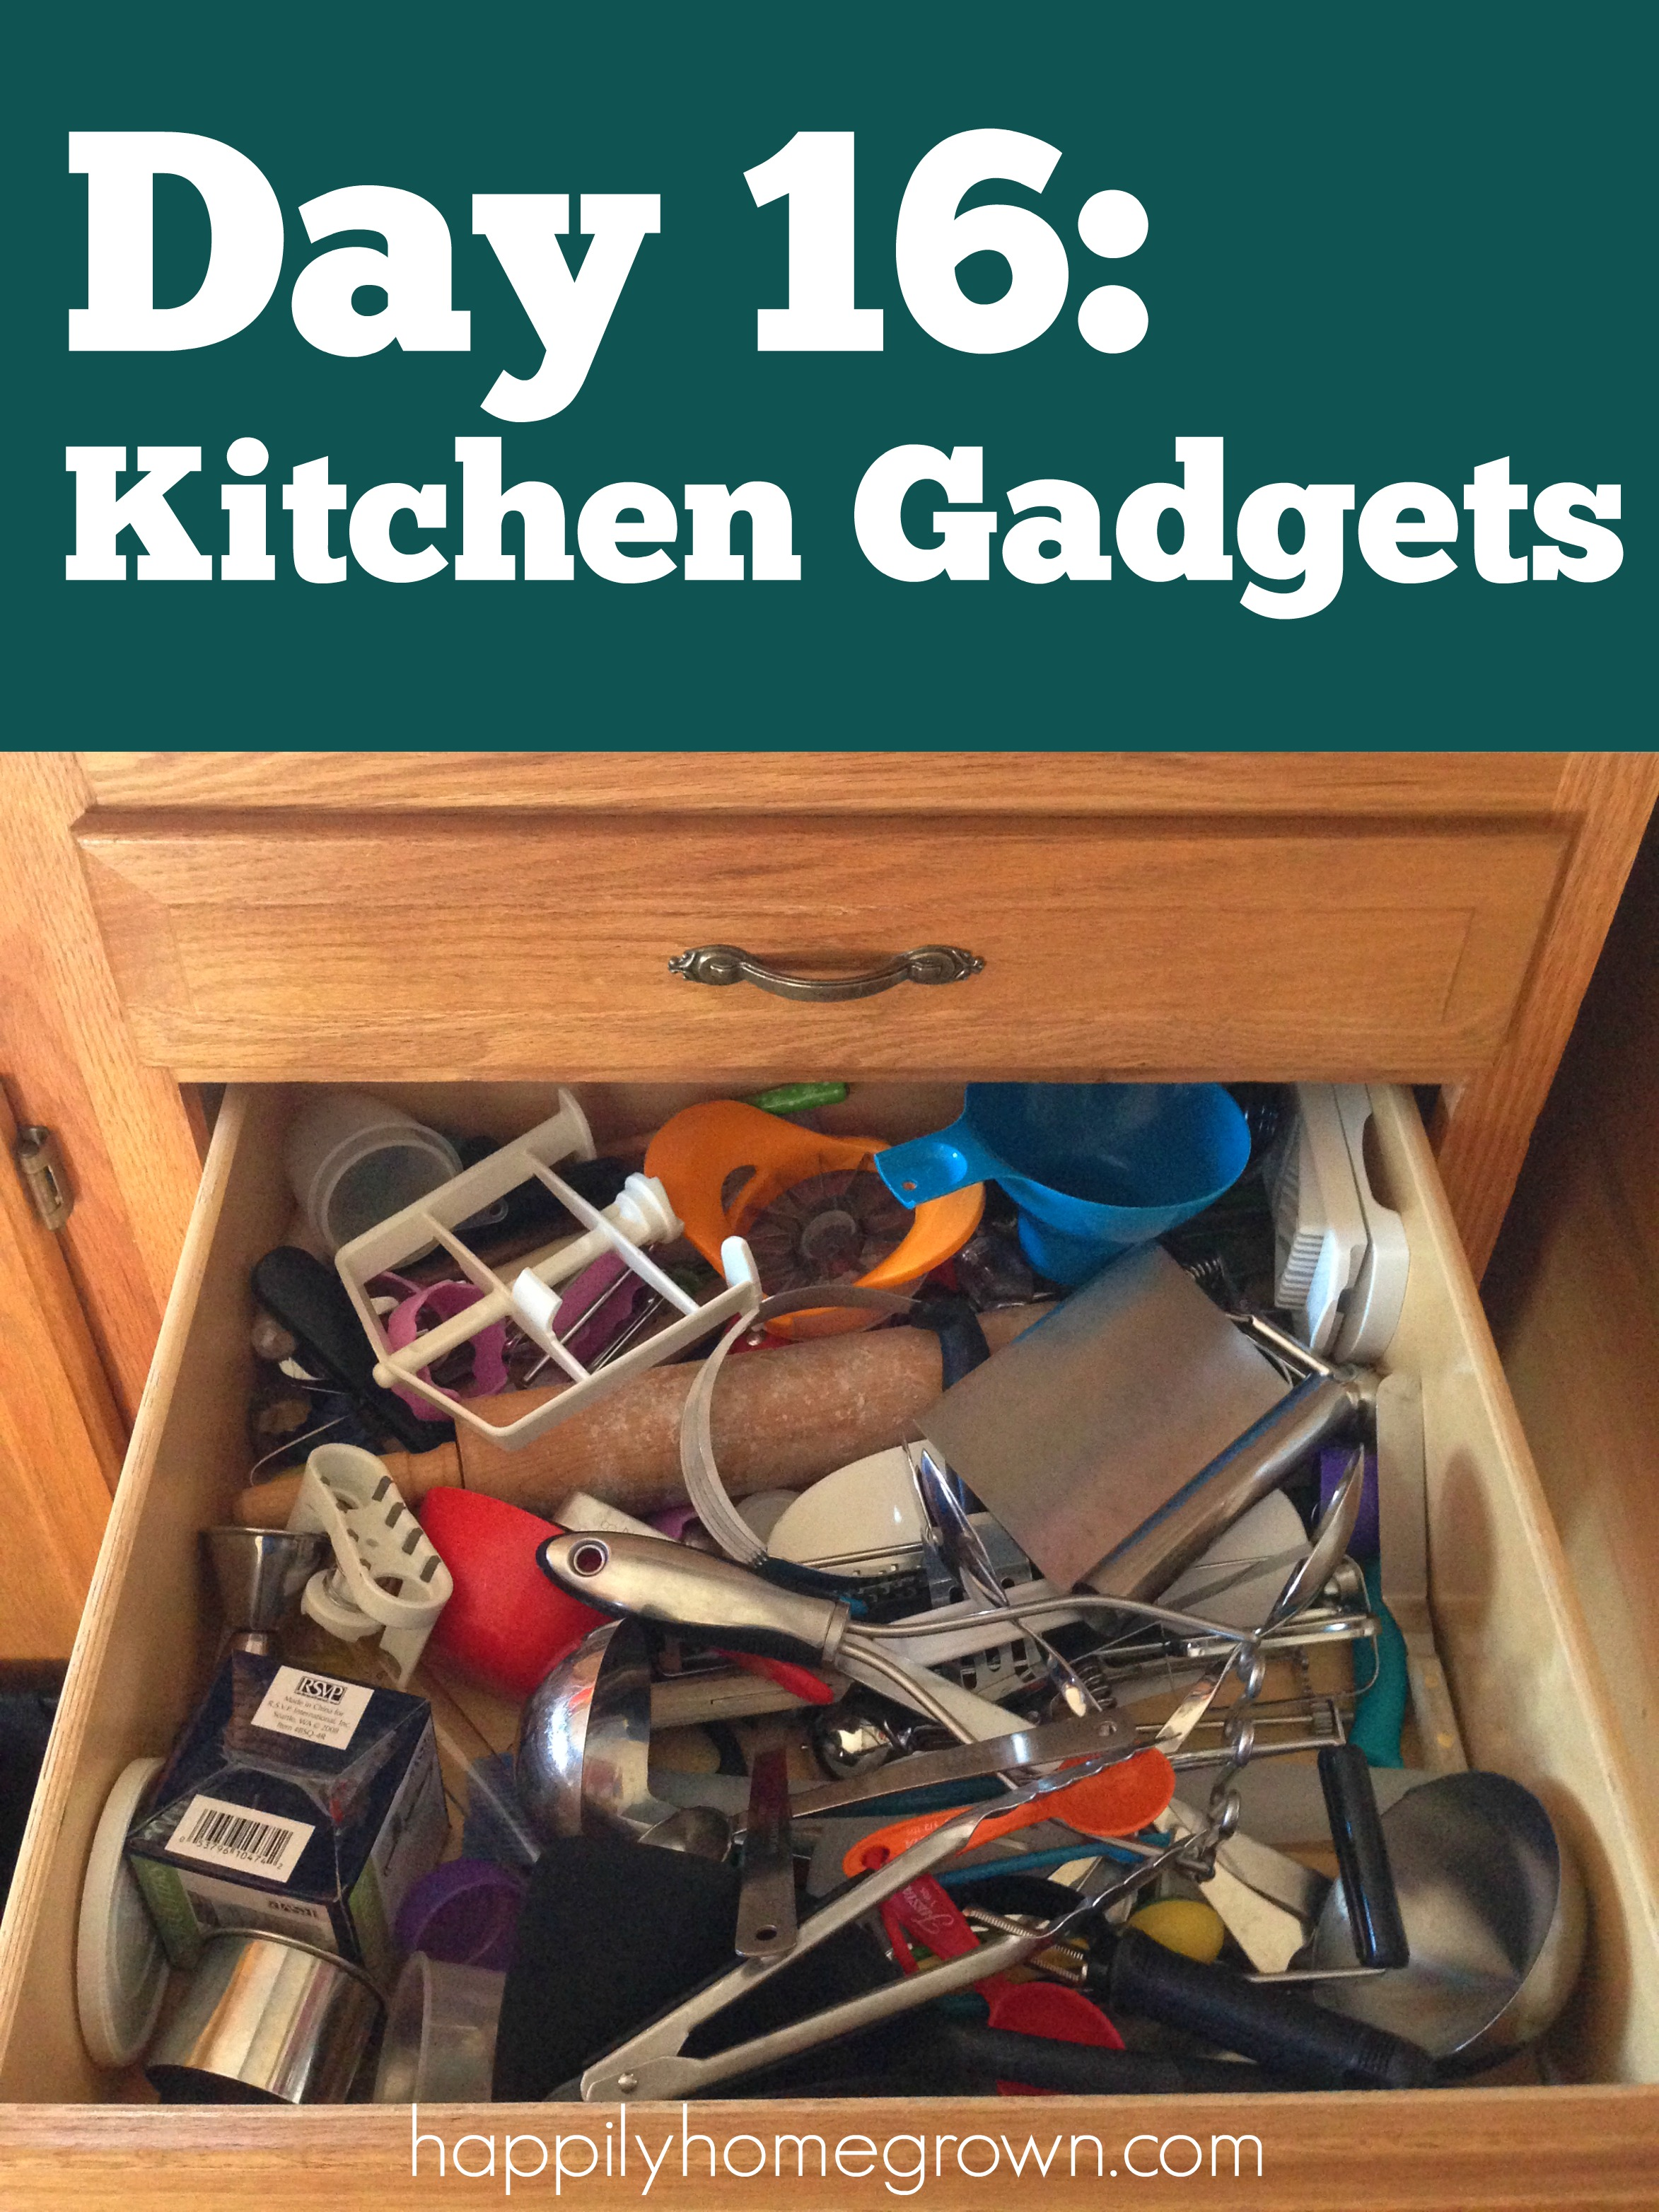 Day 16: Kitchen Gadgets taking over your kitchen? Take it back and declutter your kitchen!